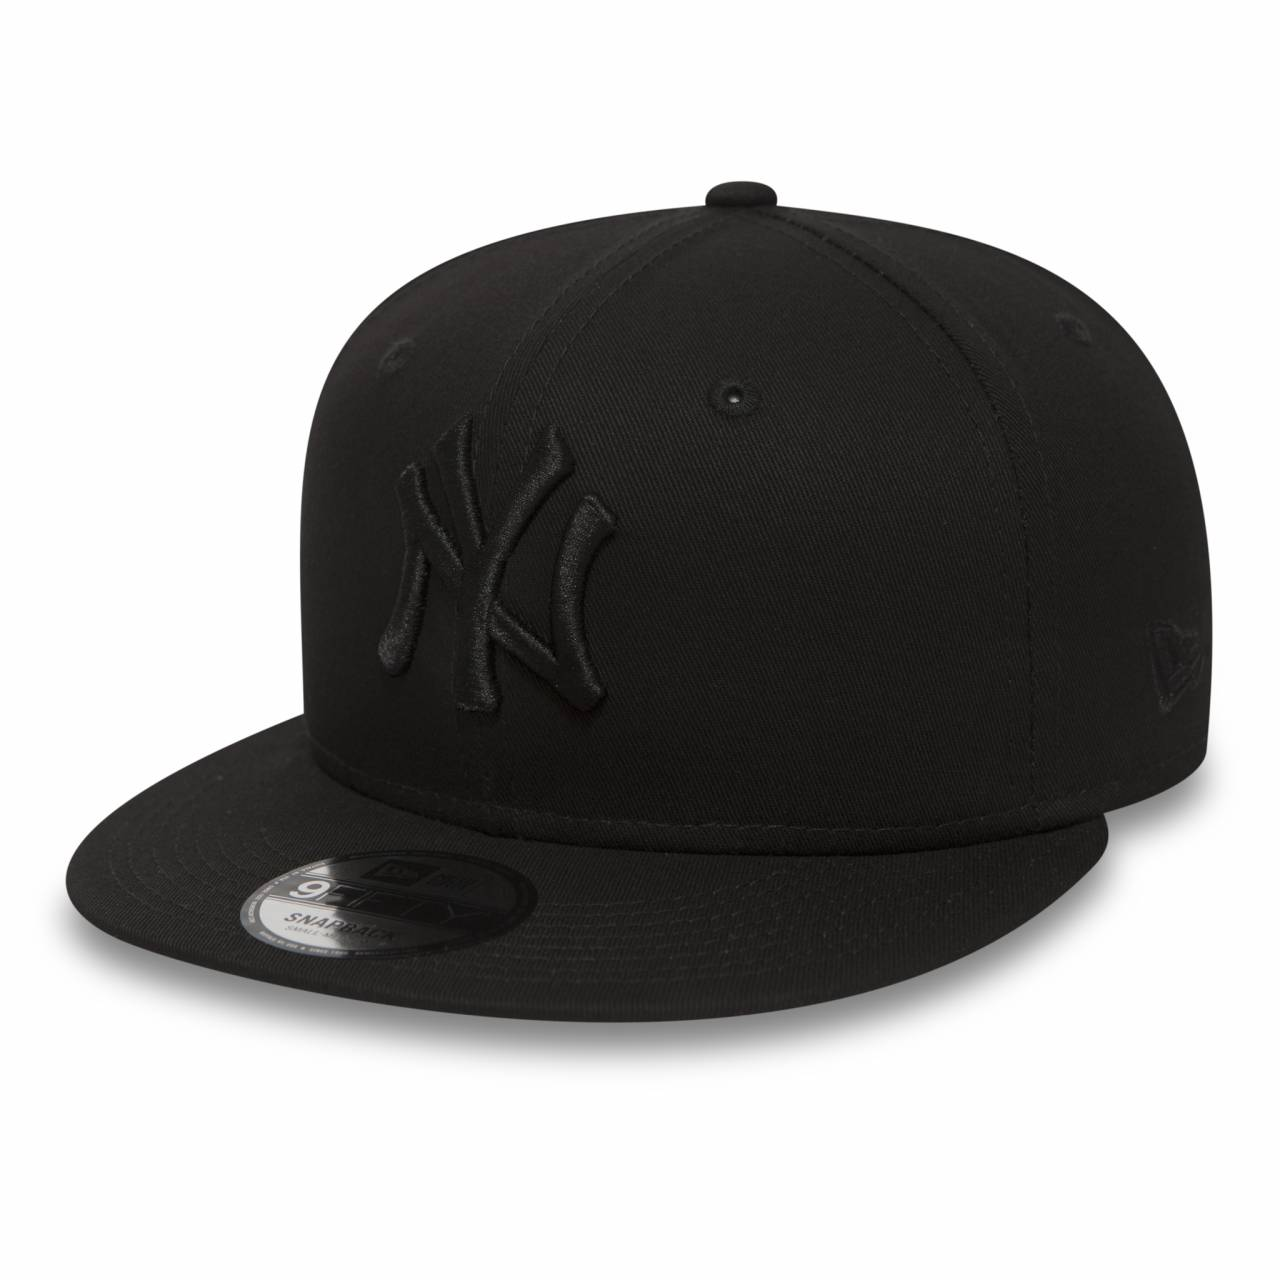 11180834 9FIFTY MLB NEW YORK YANKEES BLACK/BLACK SNAPBACK